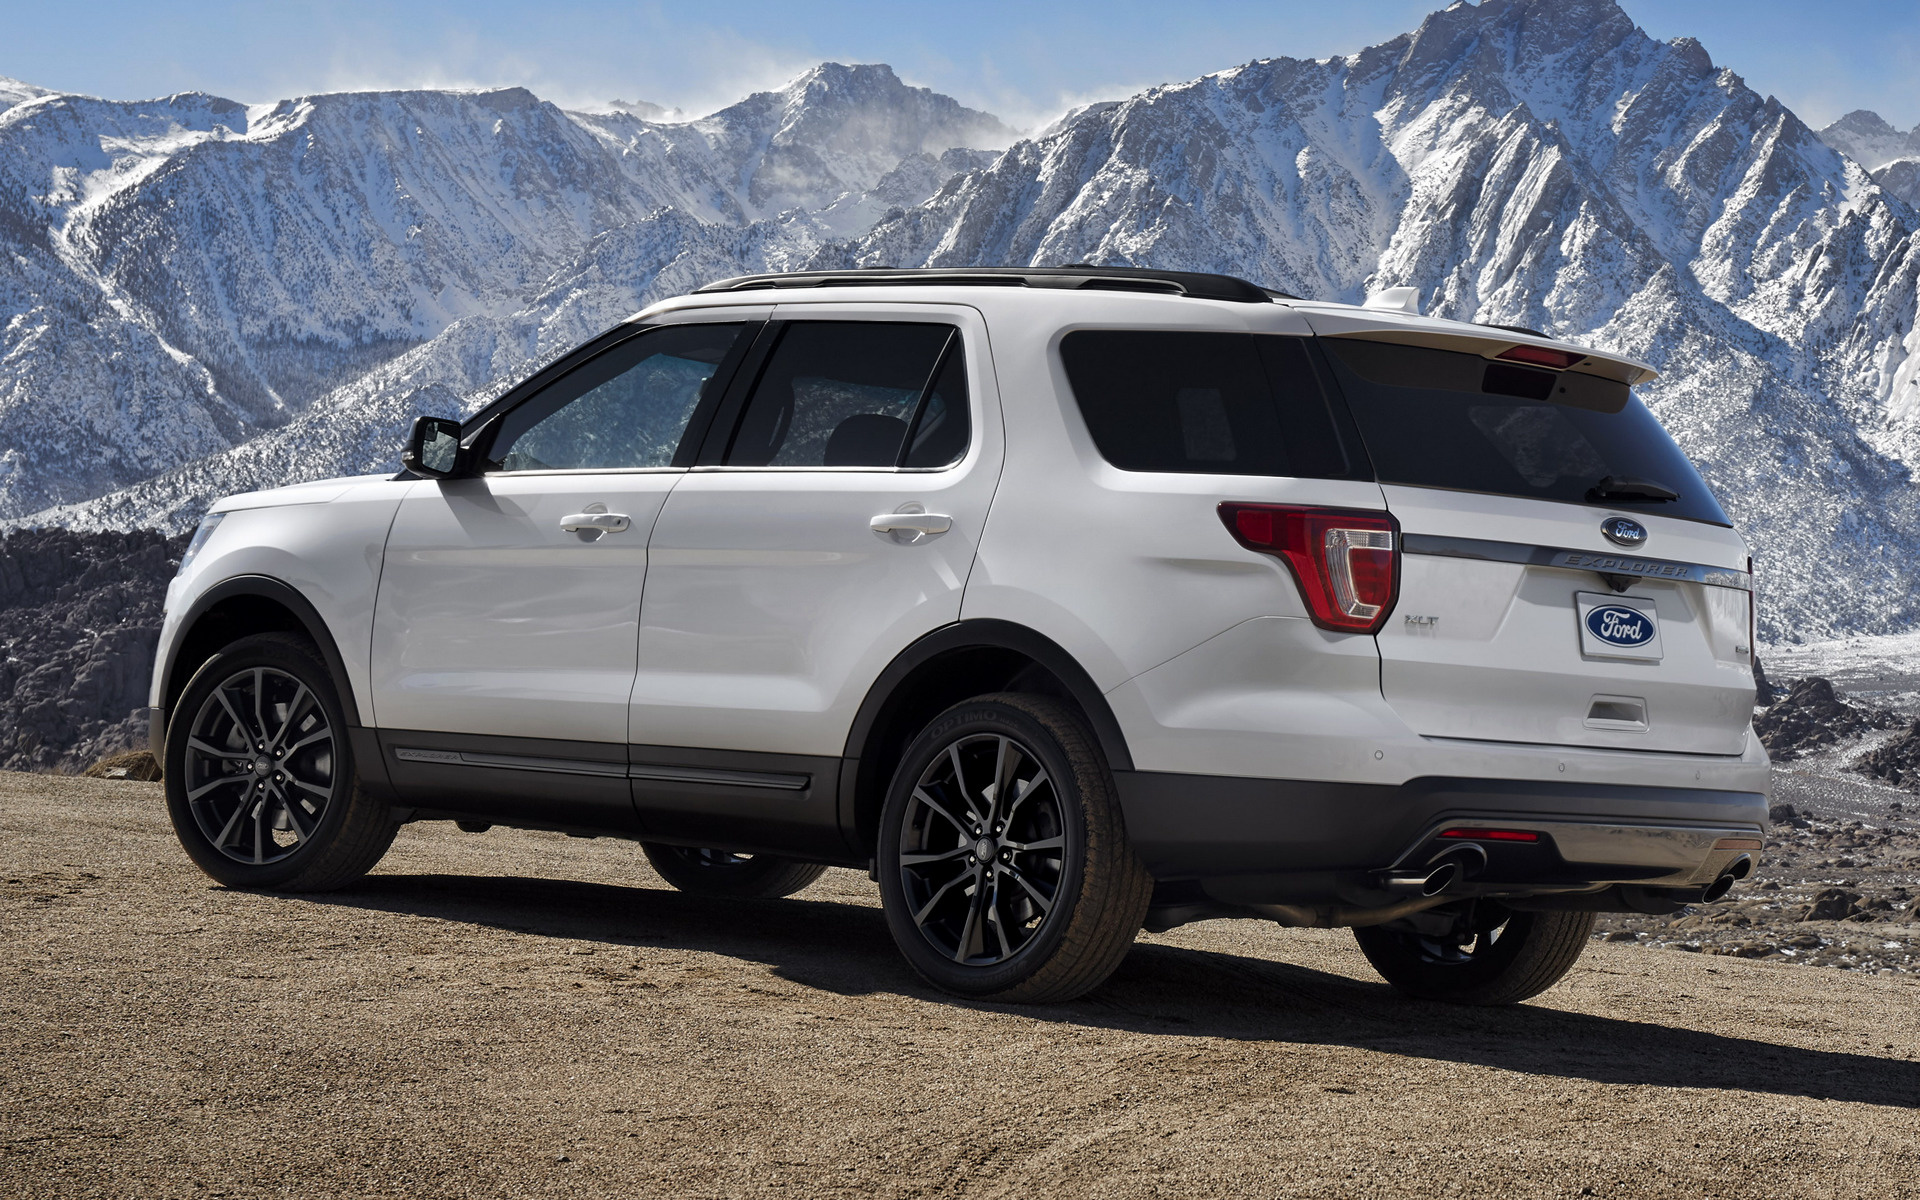 Ford Explorer XLT Sport Appearance Package (2017) Wallpapers and HD Images - Car Pixel